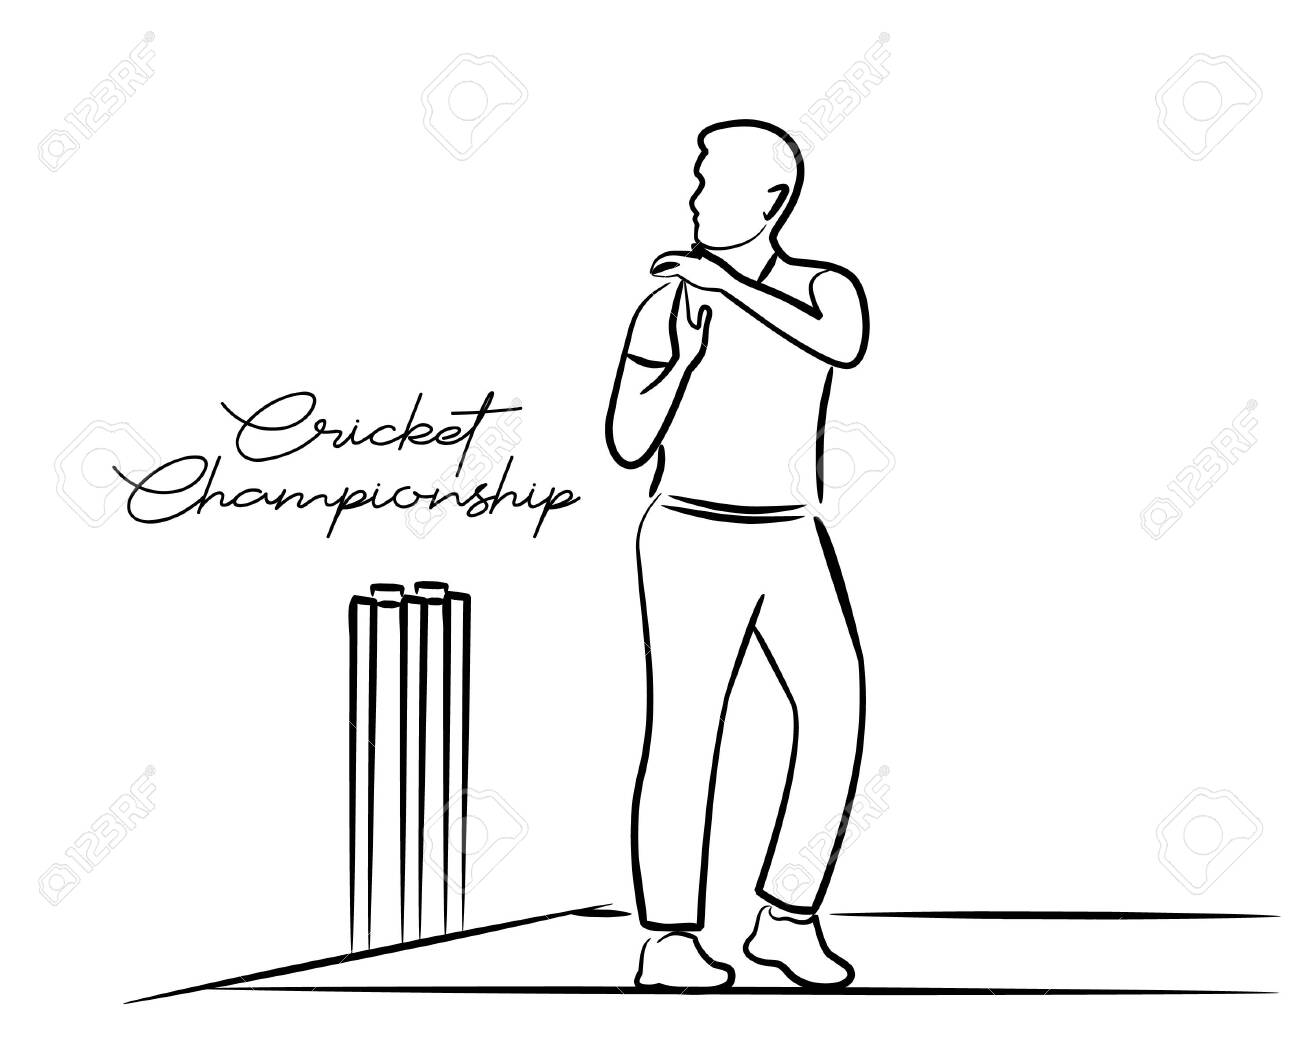 Cricketer Want Review - single line art drawing  Vector Design